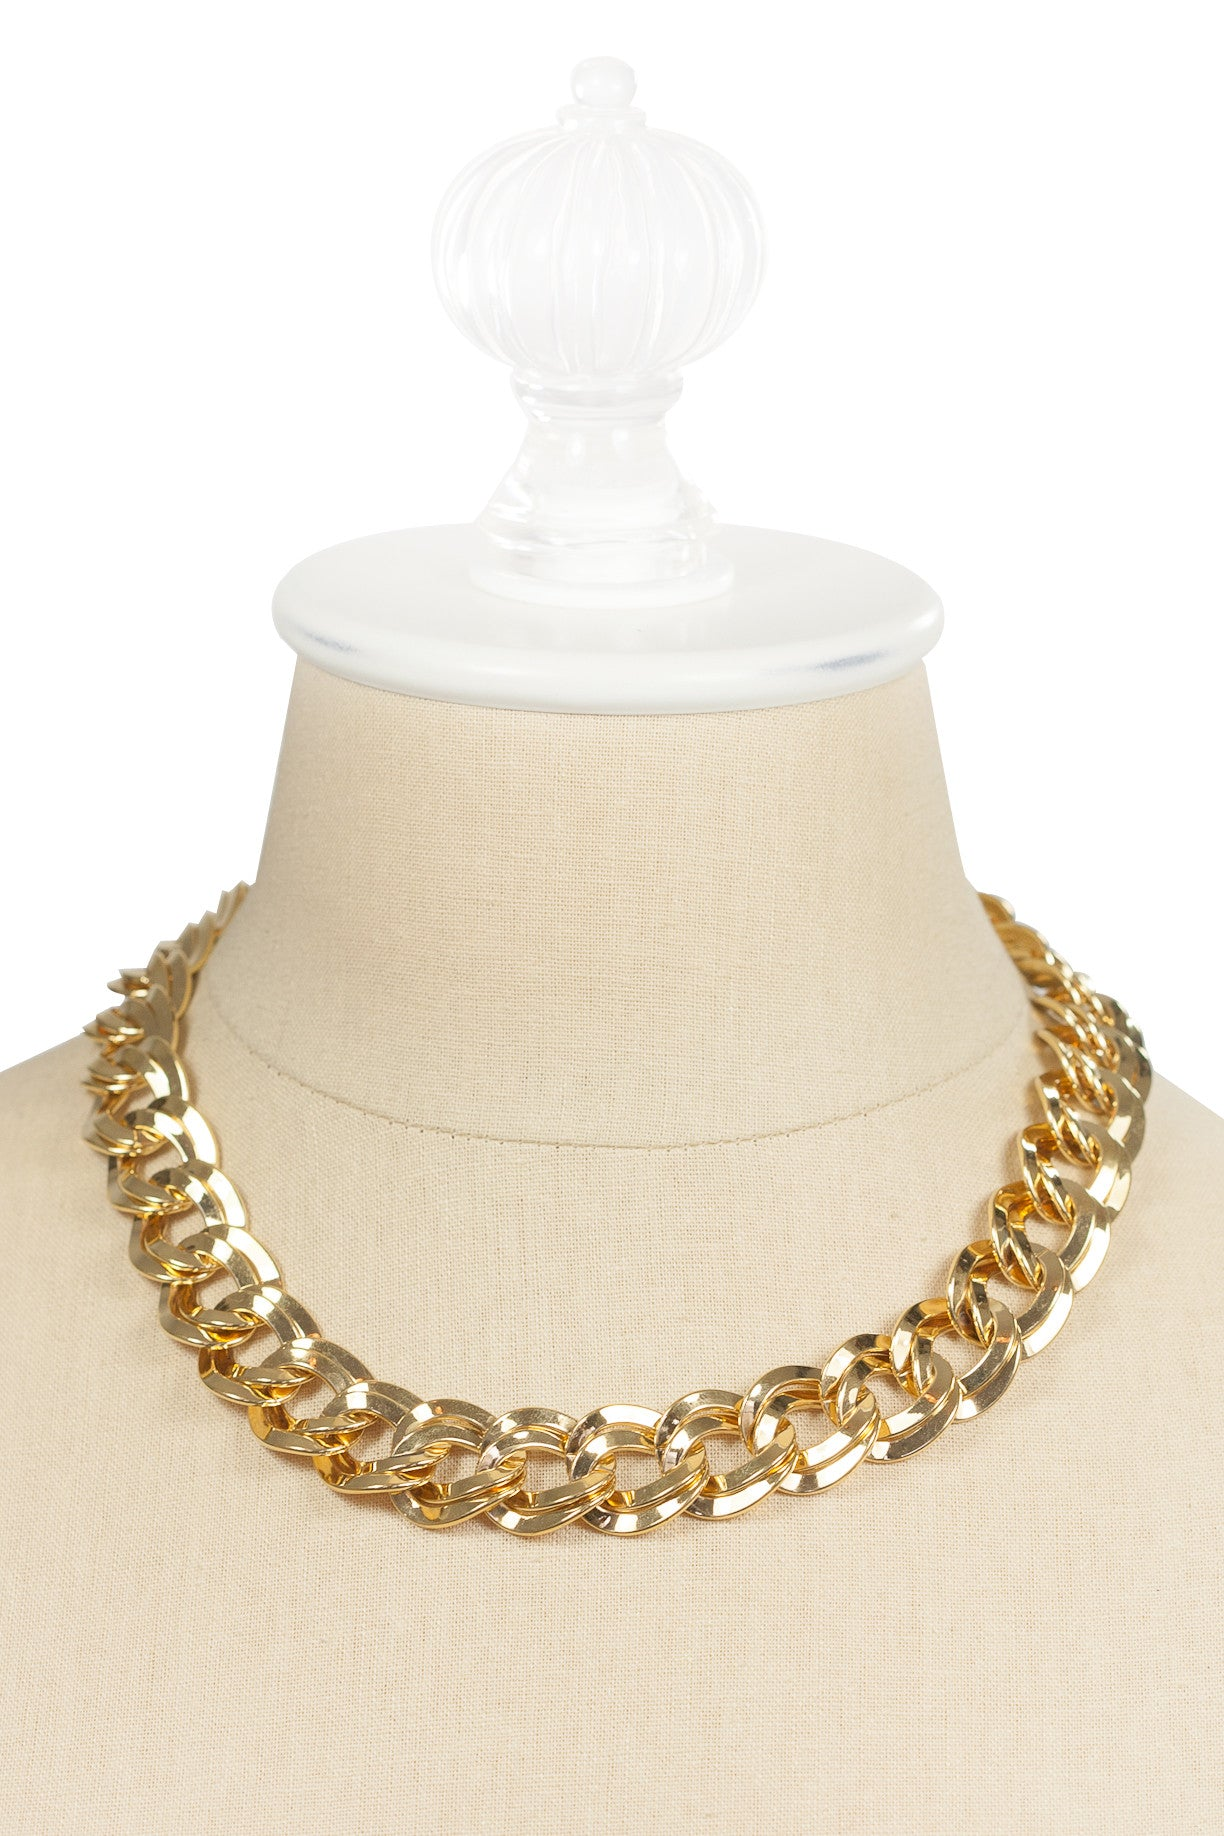 80's__Monet__Chunky Double Link Necklace